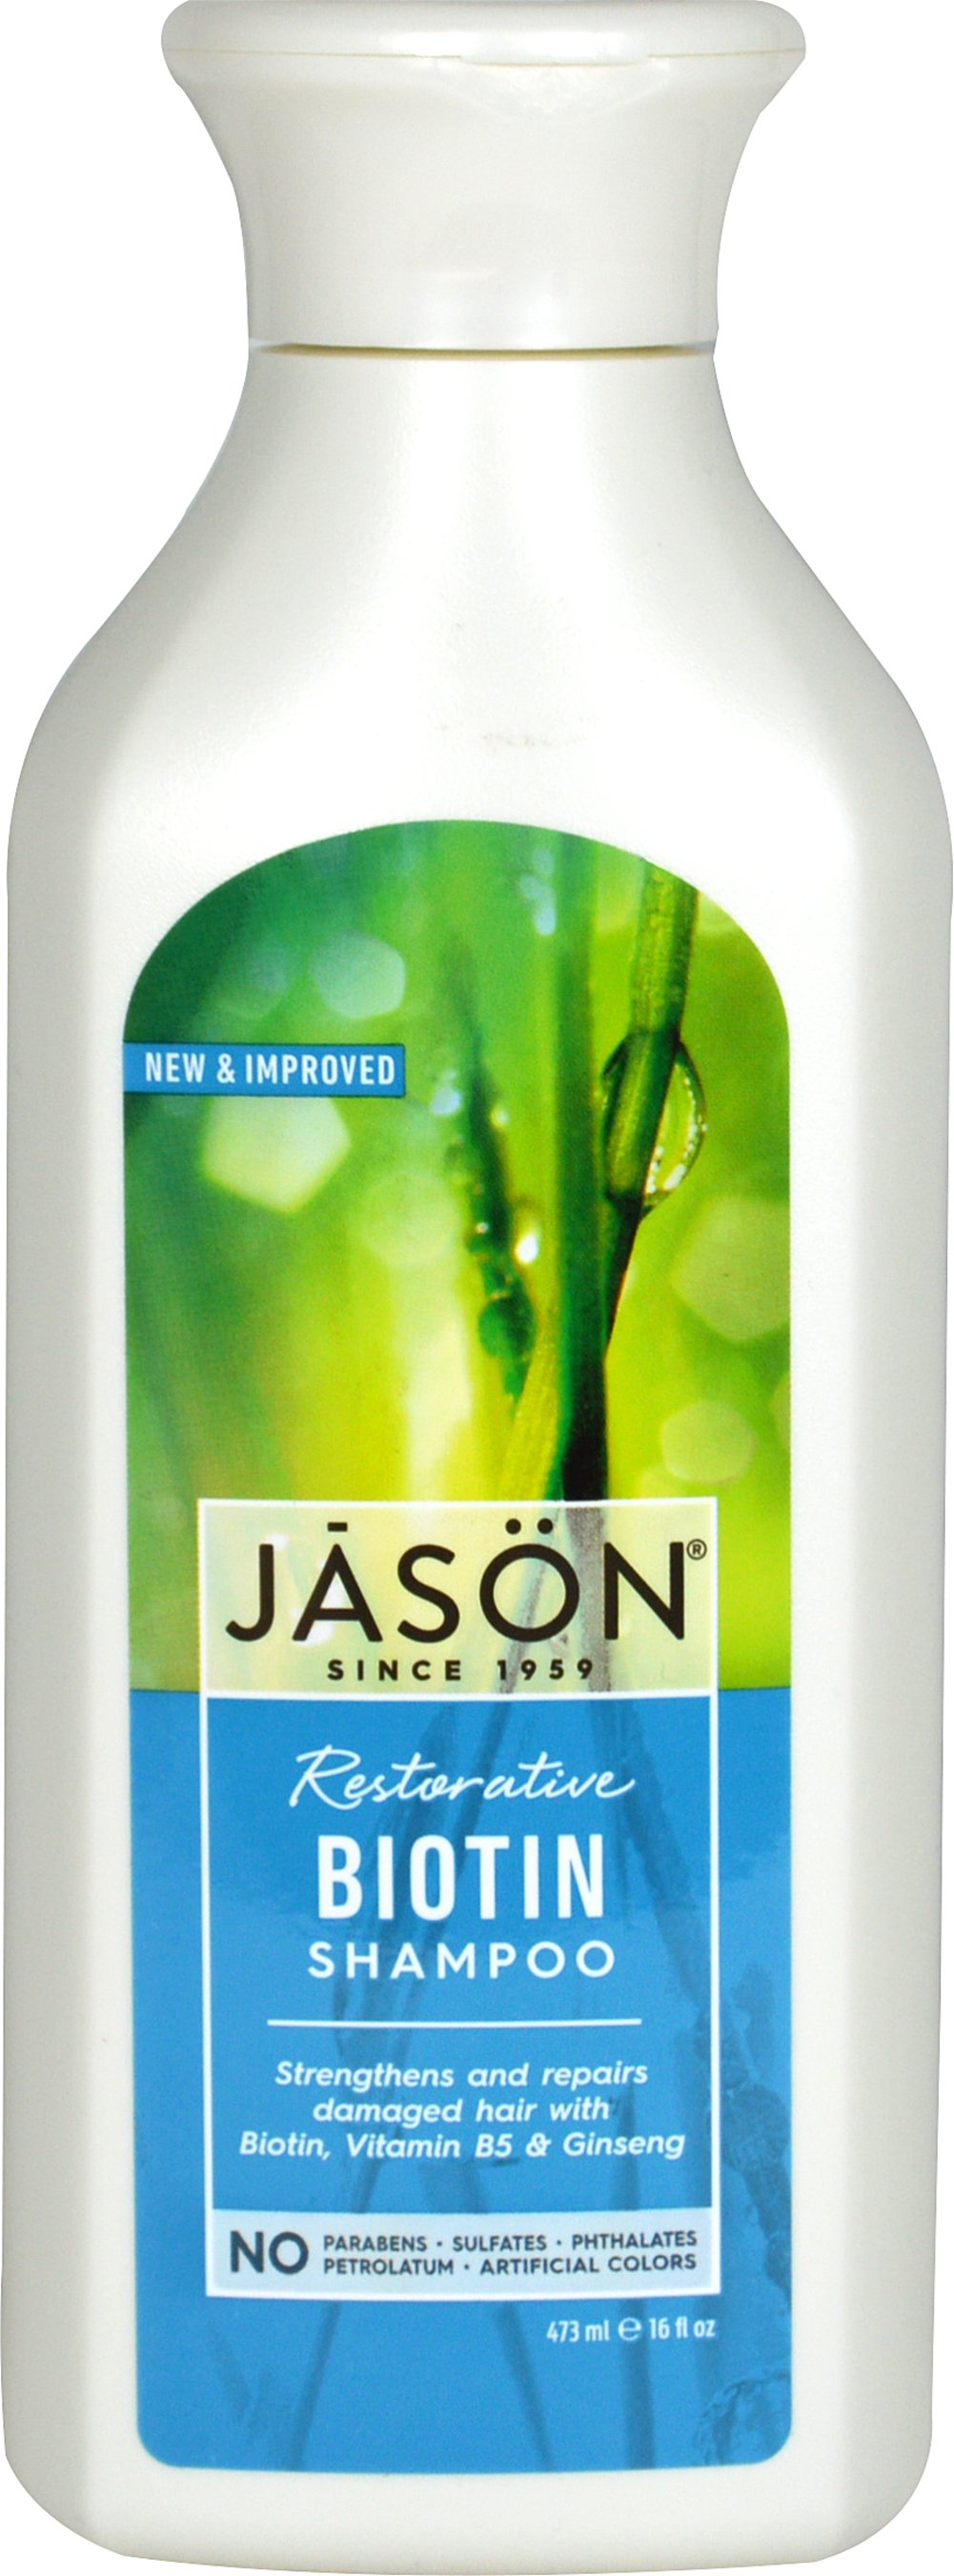 Jason® Natural Biotin Hair Restorative Shampoo  16 oz Shampoo  $7.34